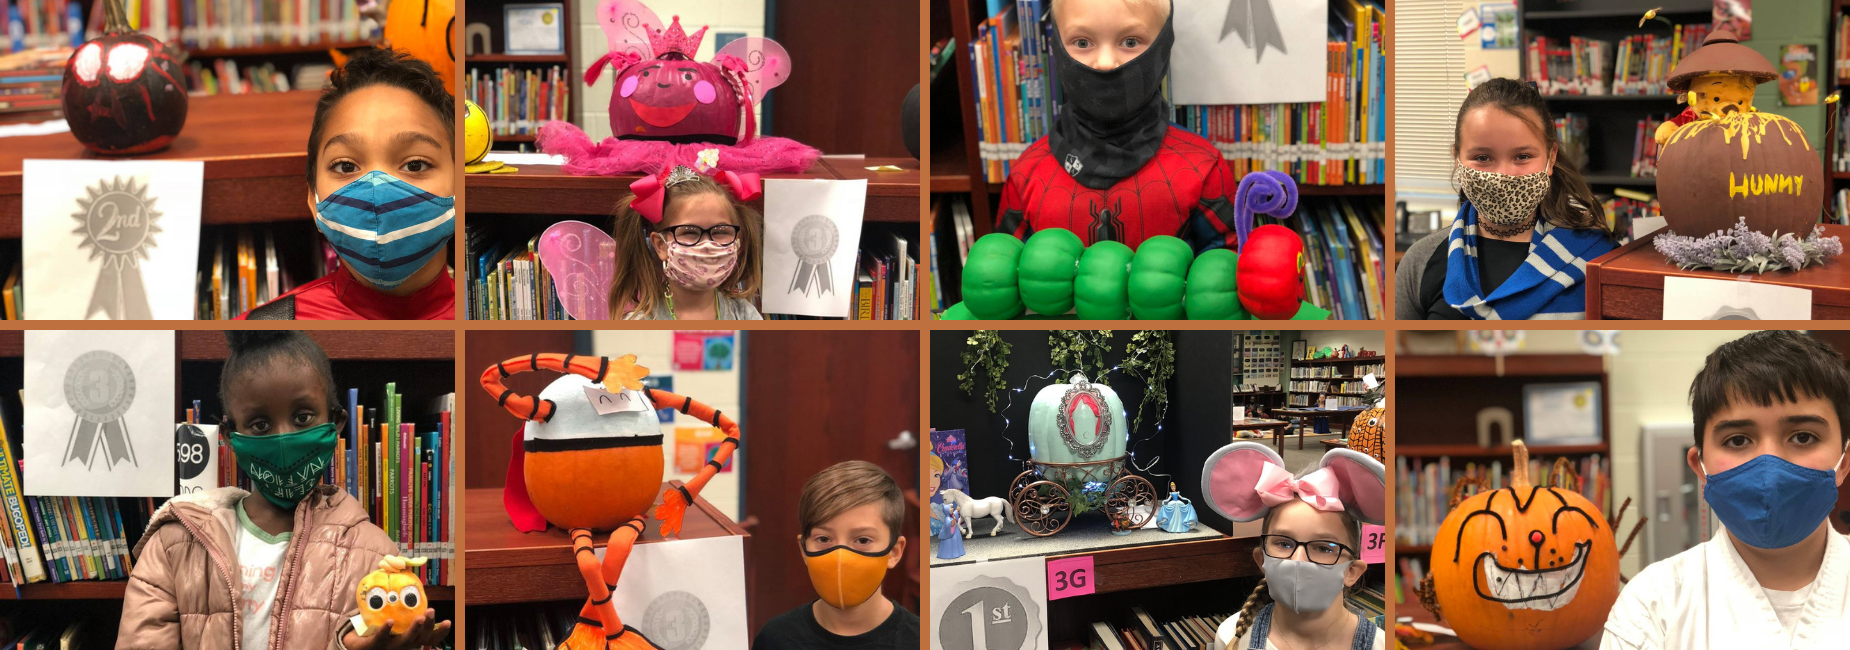 8 photos of students and their pumpkins decorated with storybook inspiration